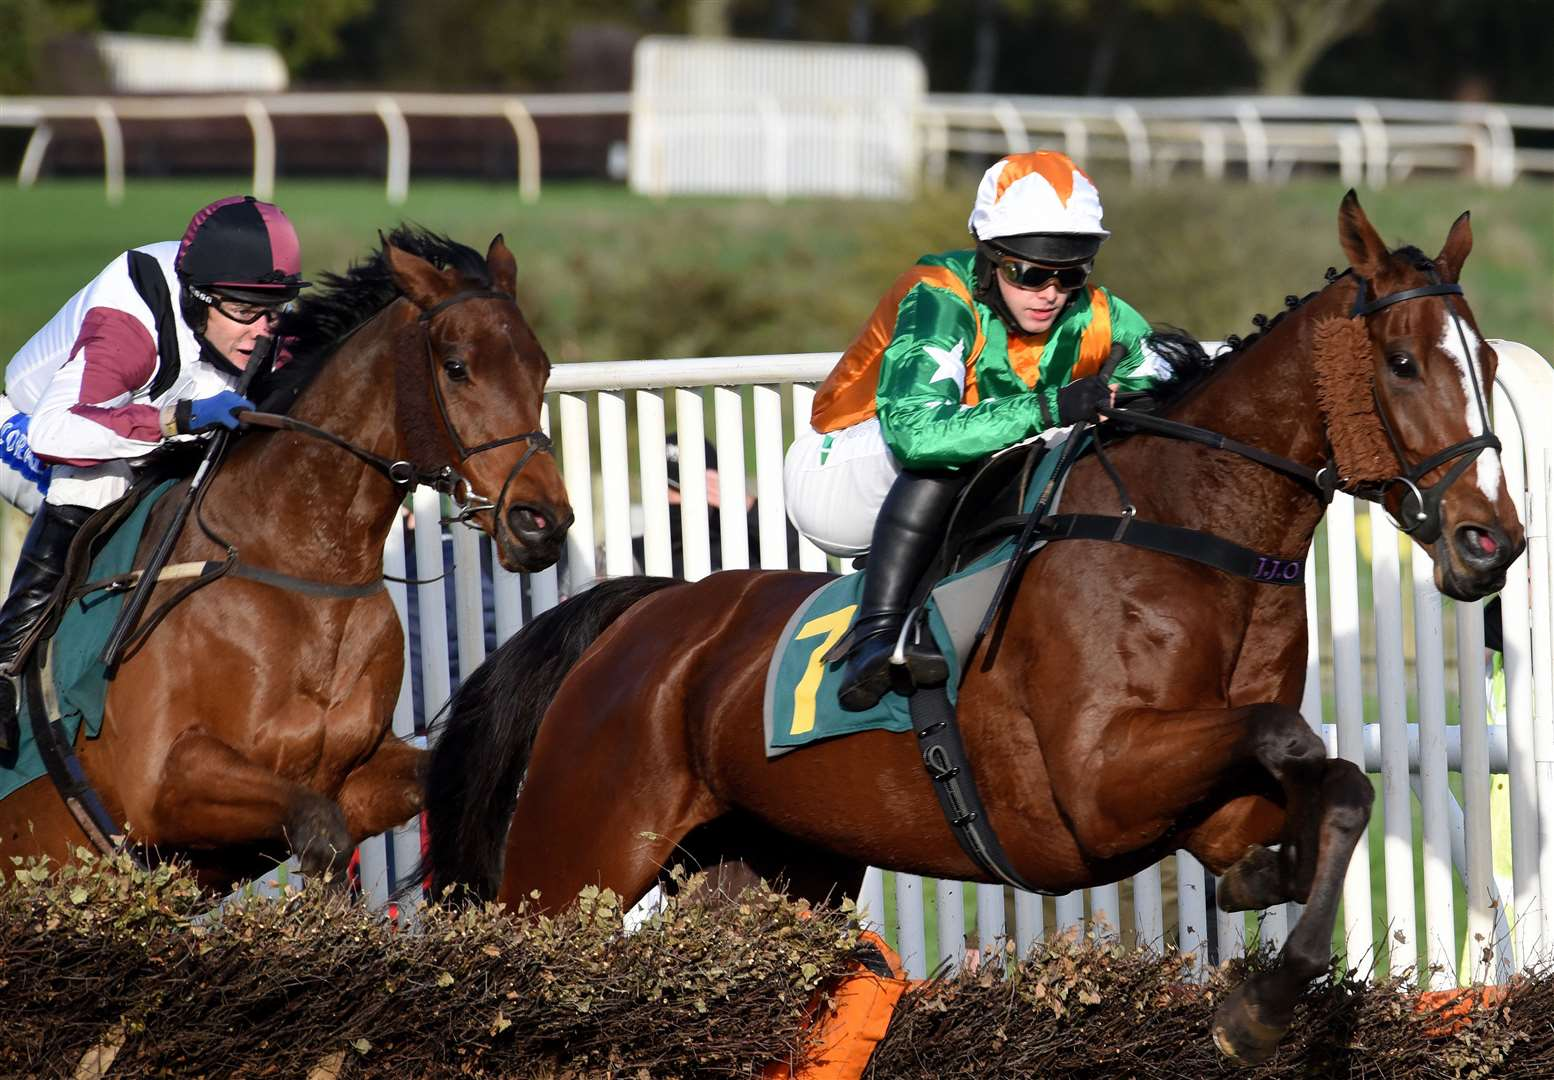 Racing Action at Fakenham Racecourse on Wednesday 28th October 2020..Action from Race No 4, winner No 7. (42906535)